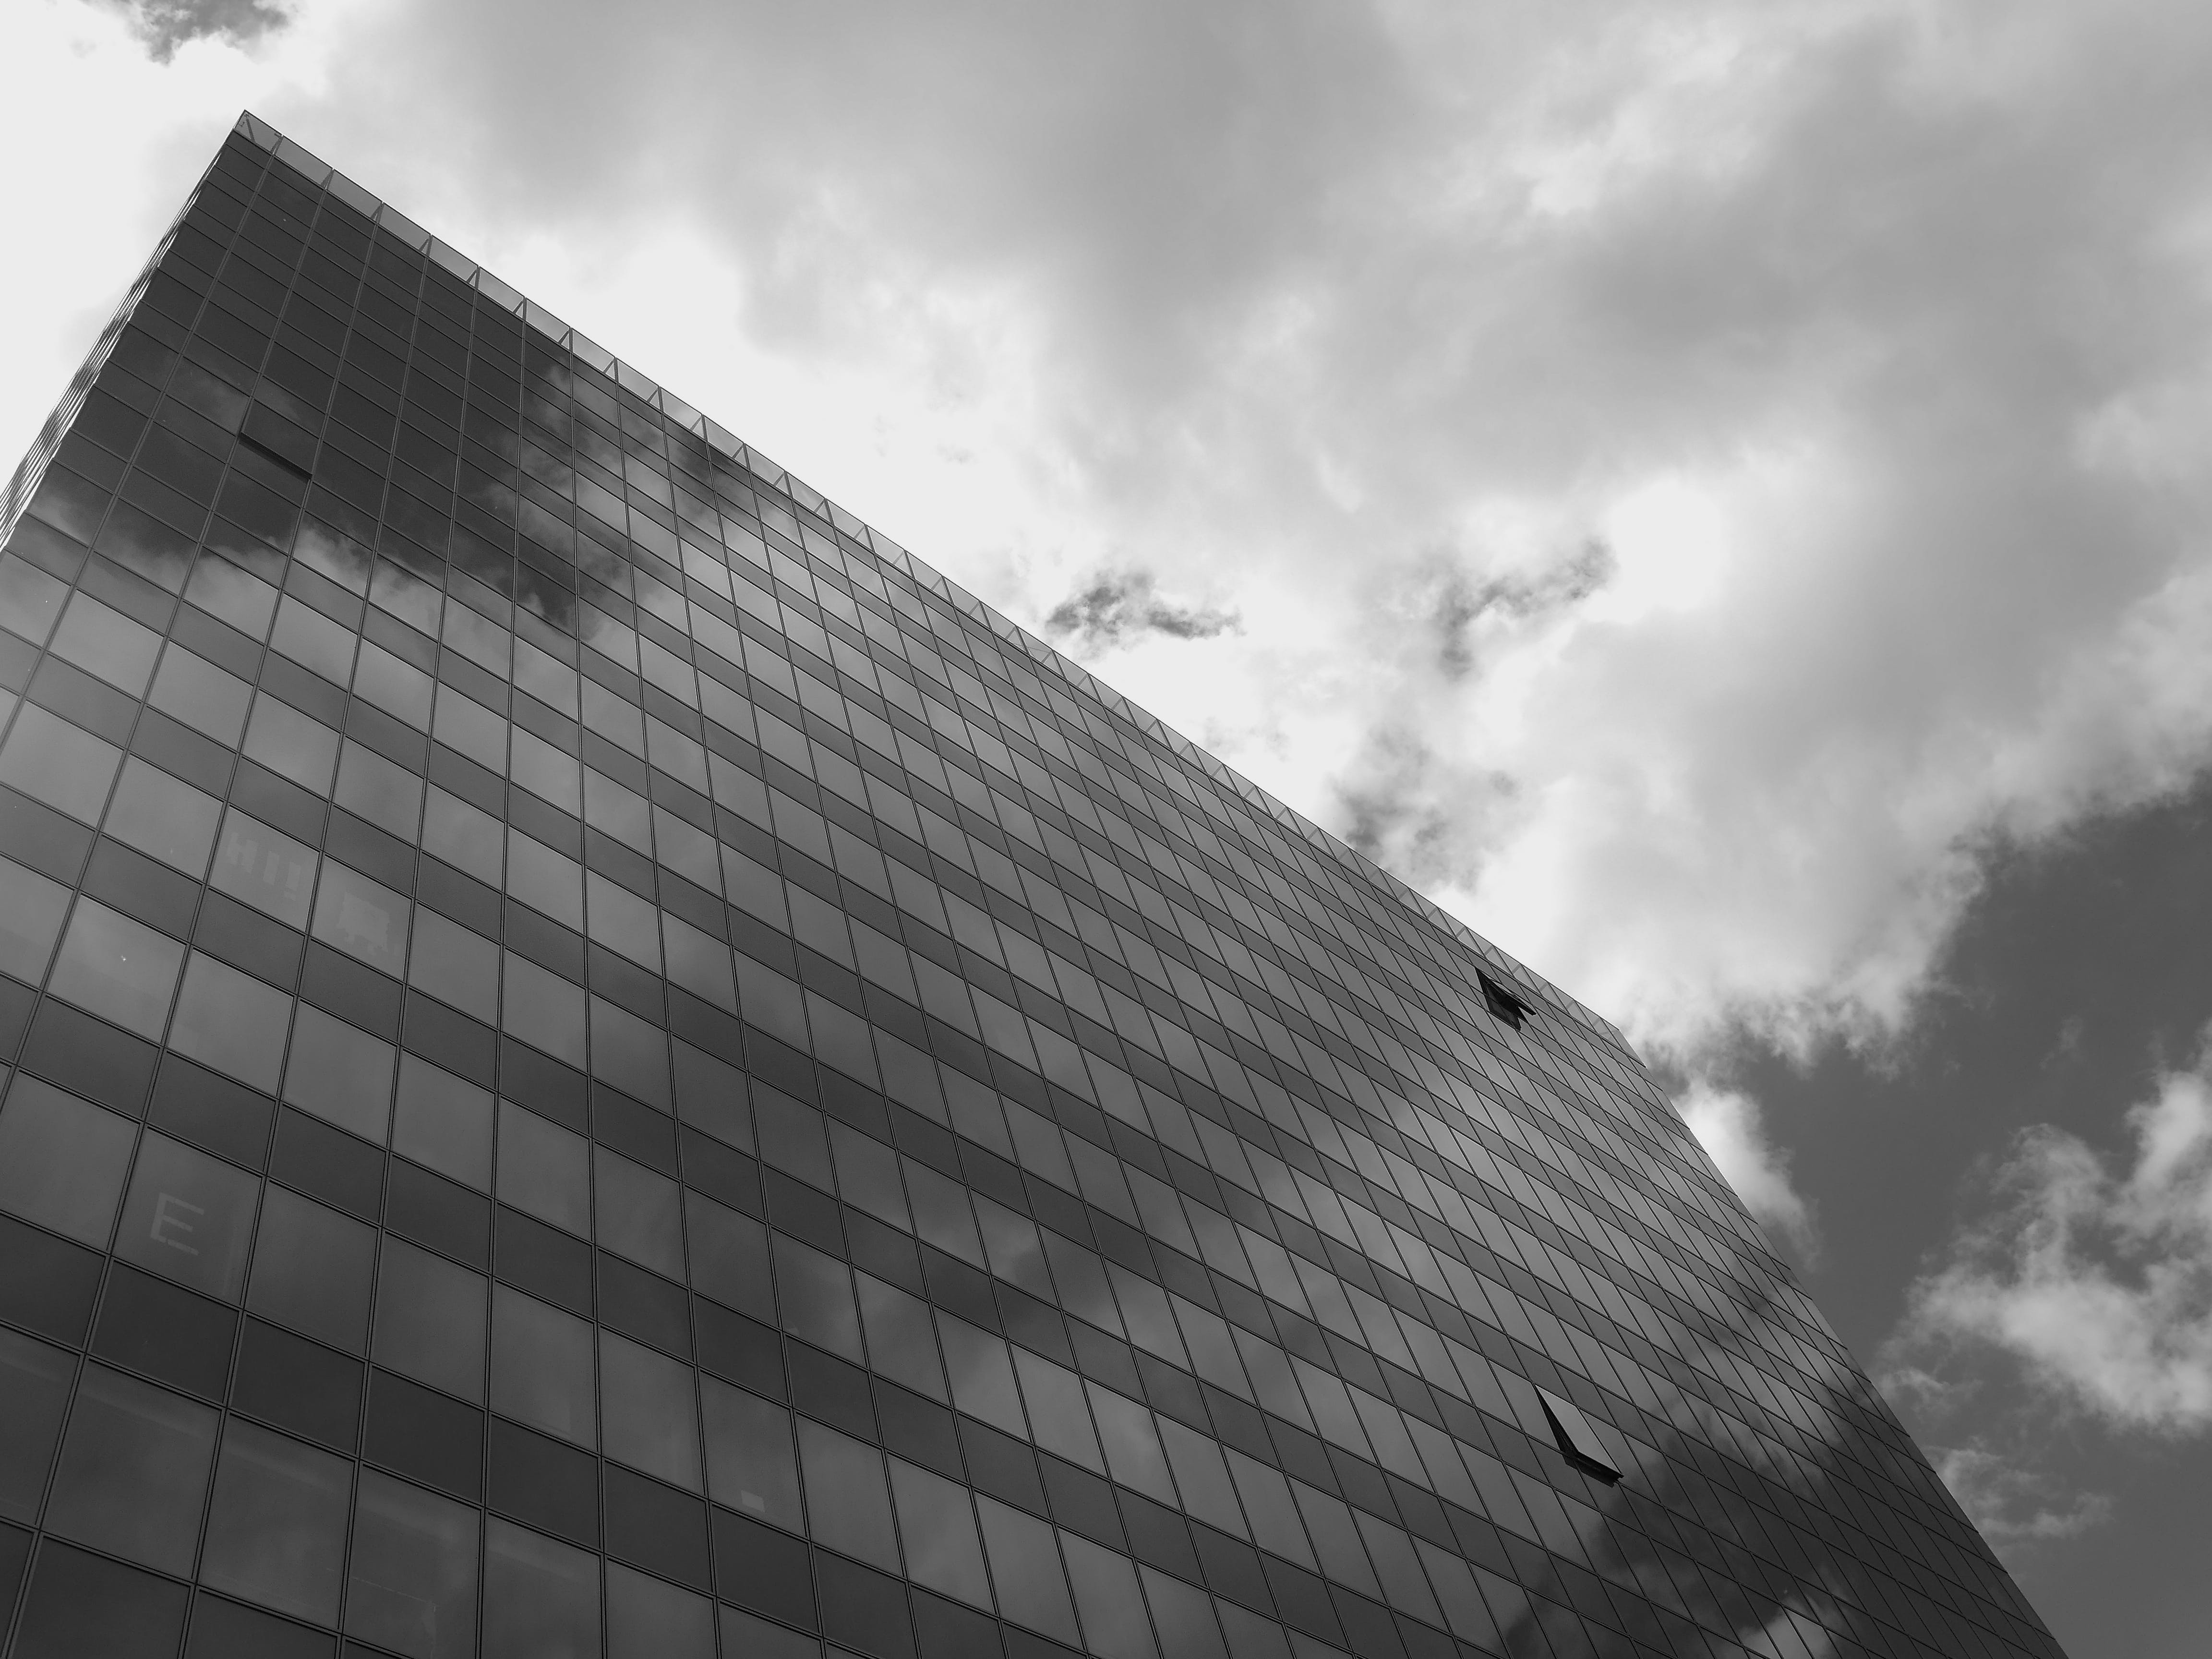 Gray Scale Photo of High-rise Building